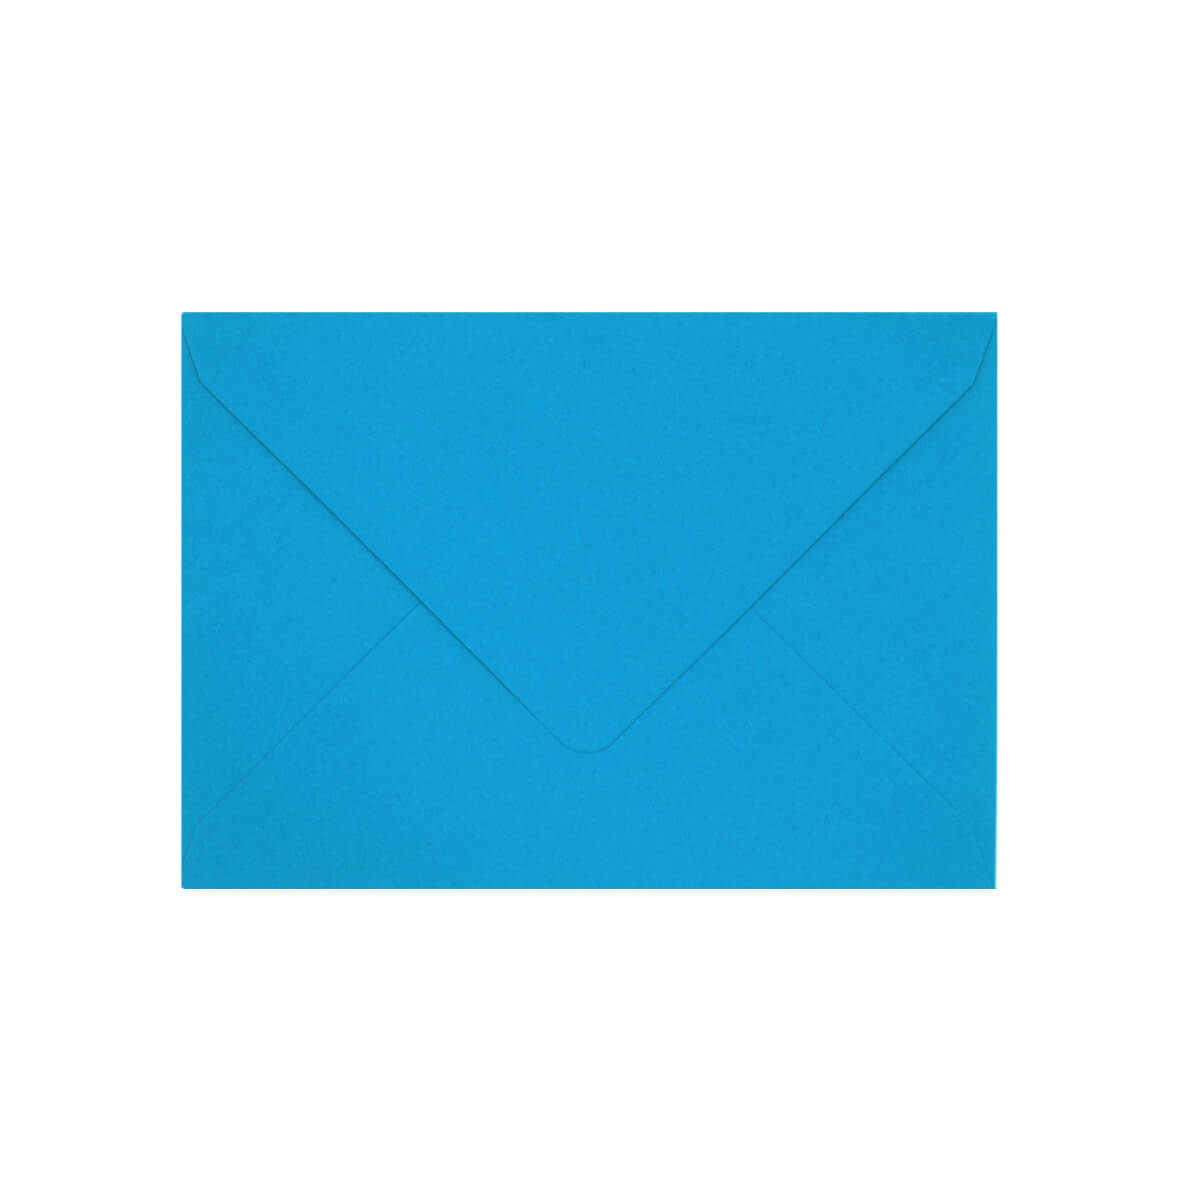 BRIGHT BLUE 152 x 216 mm ENVELOPES 120GSM (i9)